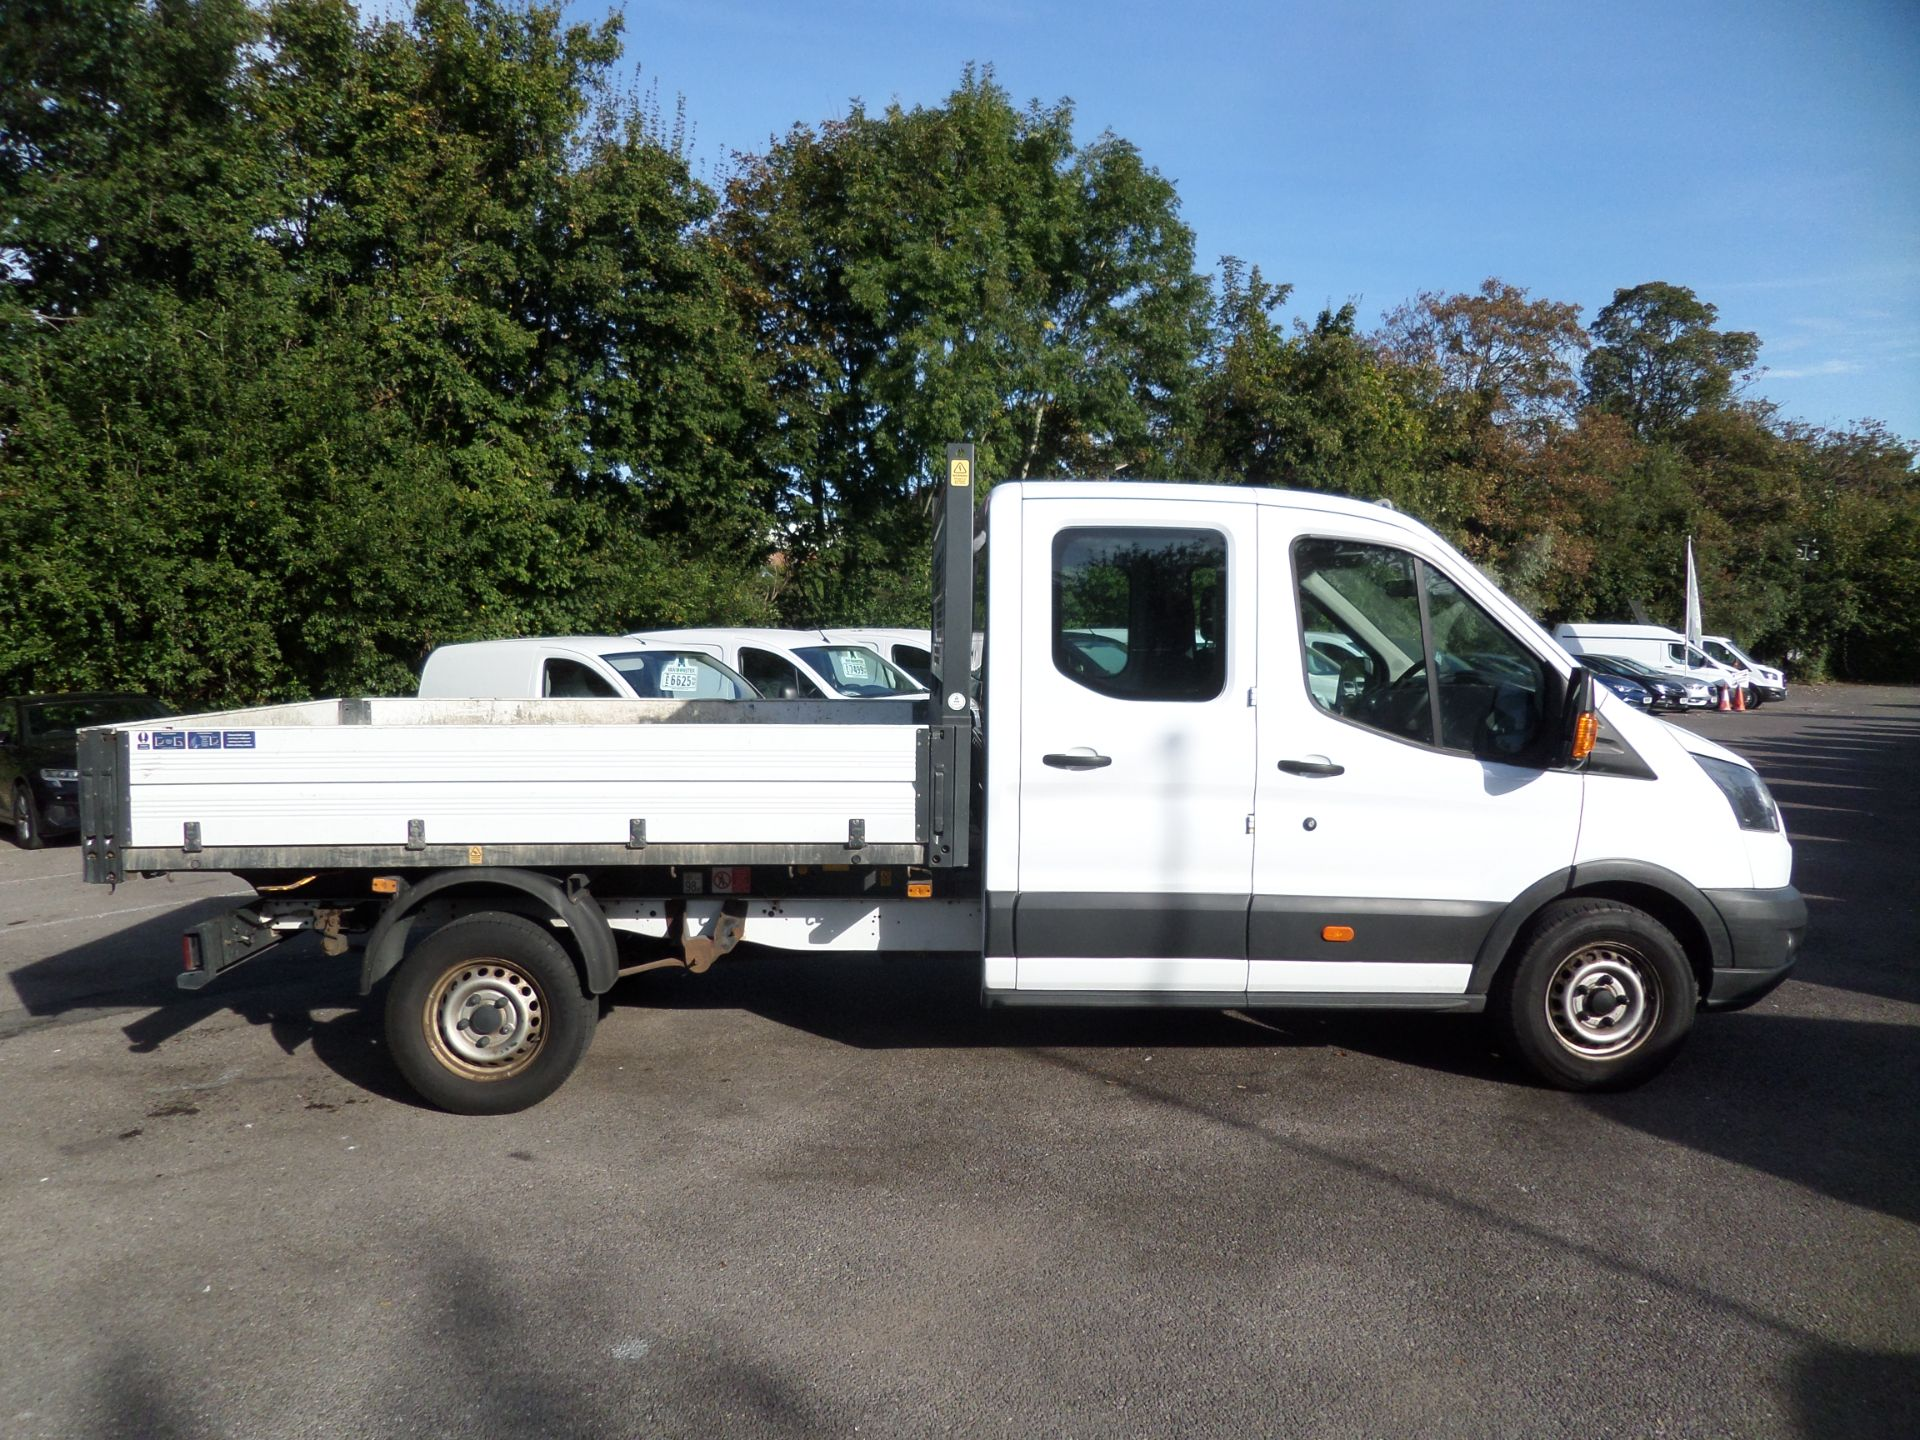 2017 Ford Transit 2.0 Tdci 105Ps H2 Double Cab Tipper Euro 6 (HV67HJC) Image 2